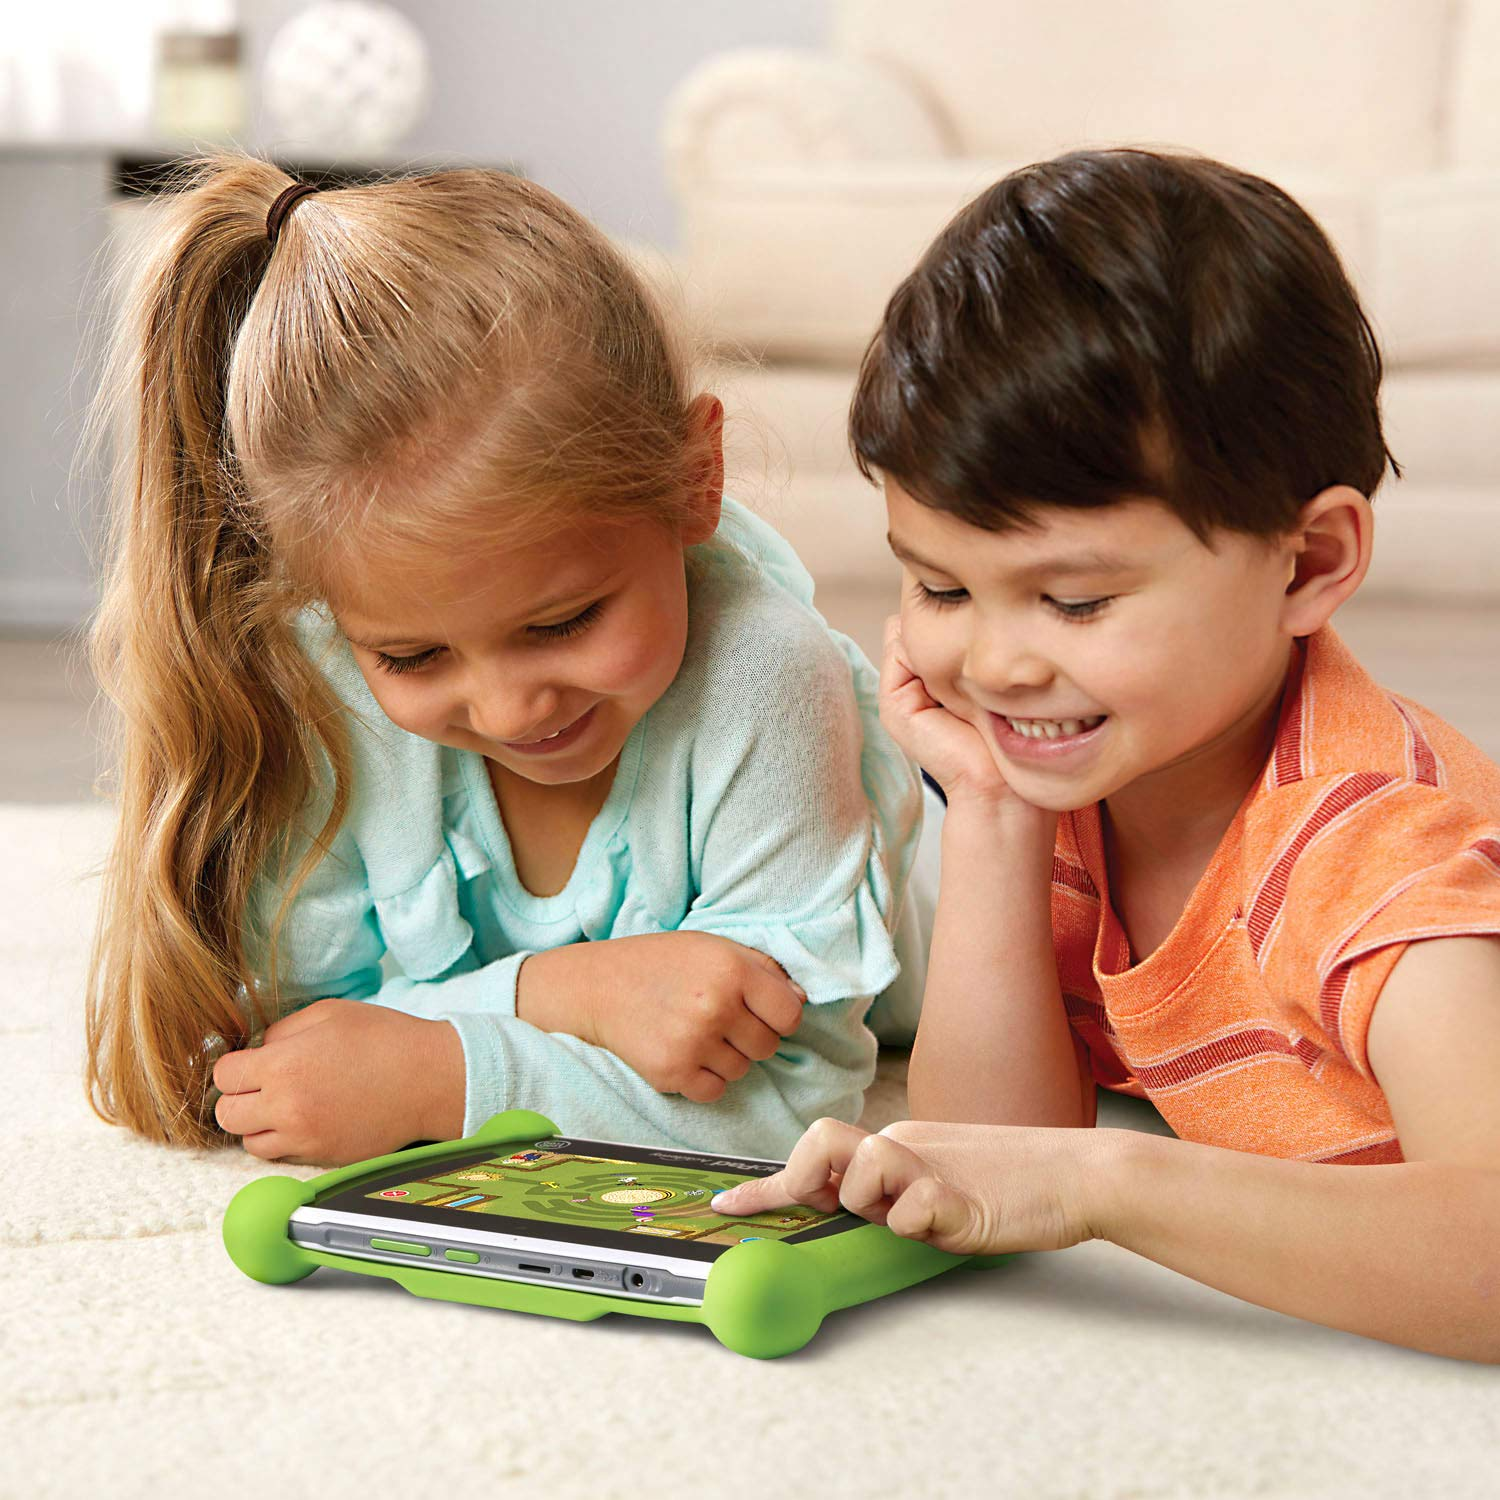 LeapFrog LeapPad Academy Kids' Learning Tablet, Green by LeapFrog (Image #9)